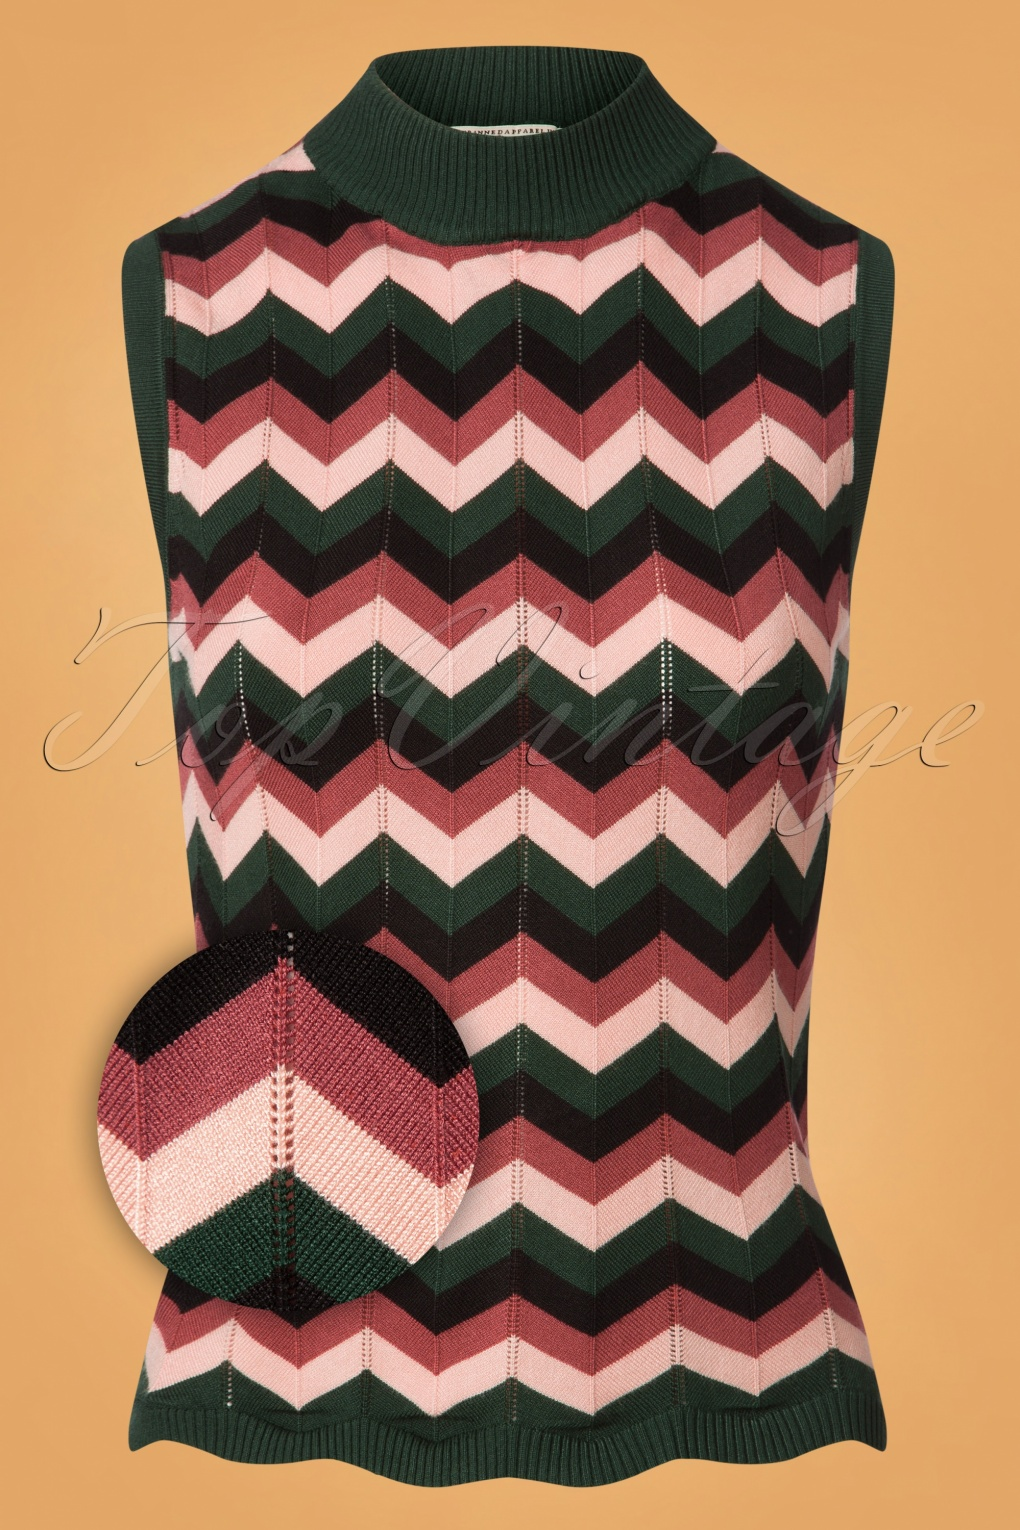 60s Shirts, T-shirt, Blouses | 70s Shirts, Tops, Vests 60s Zadia Zig Zag Top in Green and Pink £32.40 AT vintagedancer.com